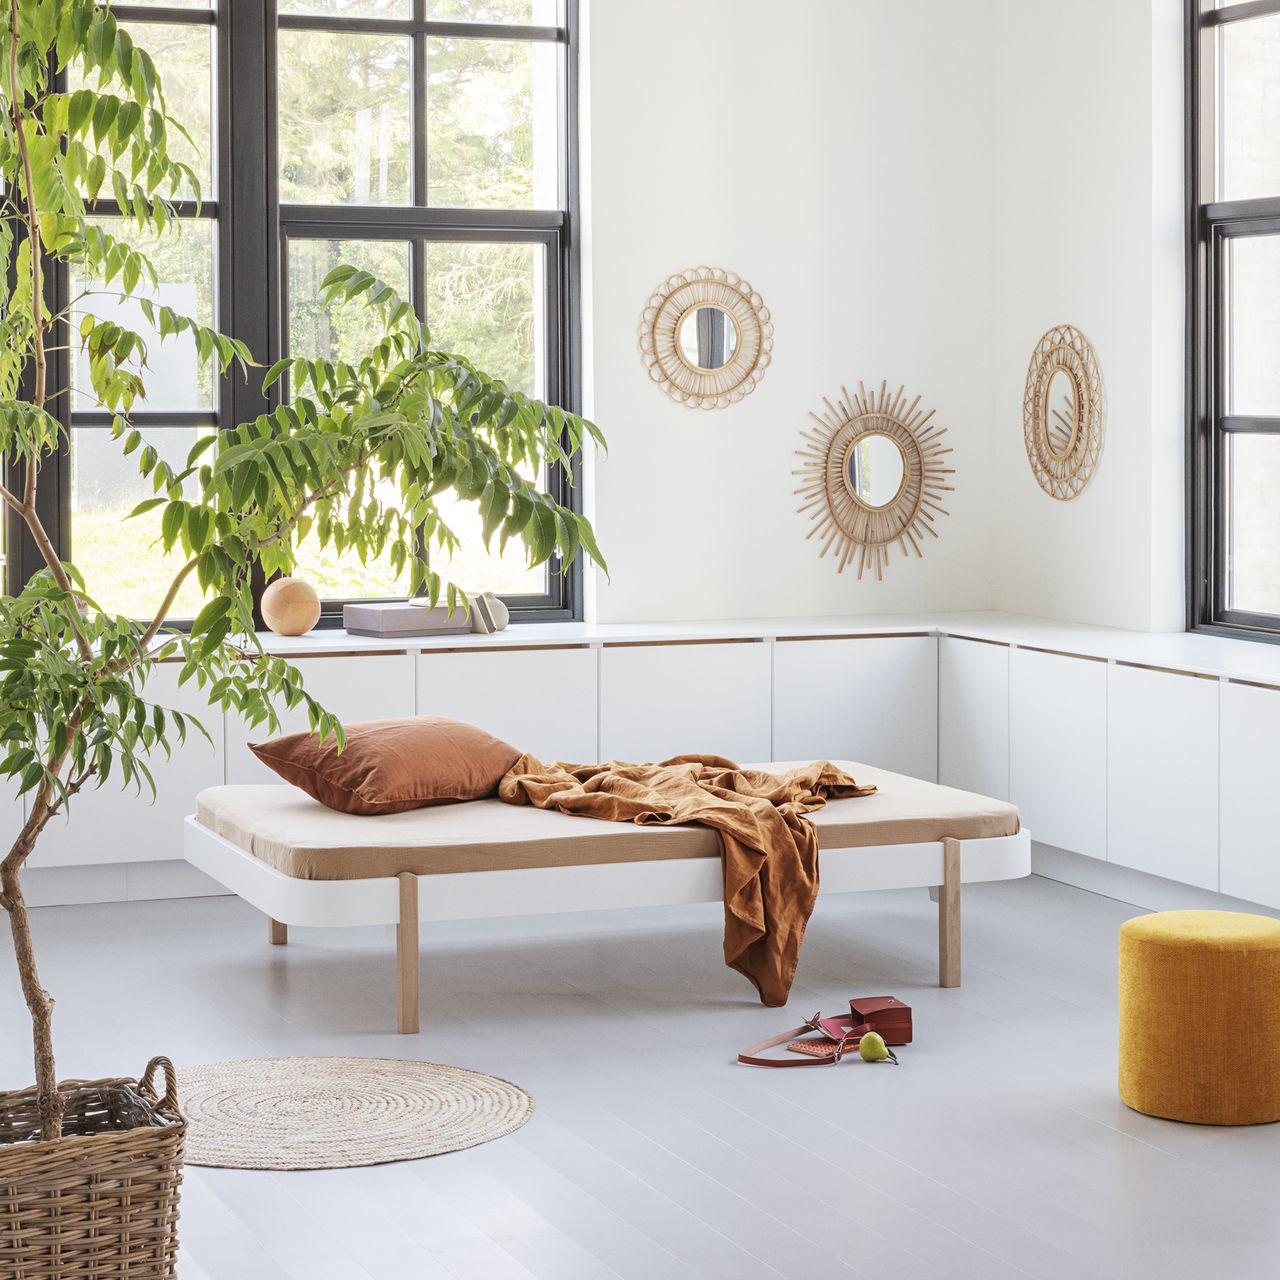 Oliver Furniture Wood Lounger Weiß - Eiche in Berlin kaufen - Kleine Fabriek